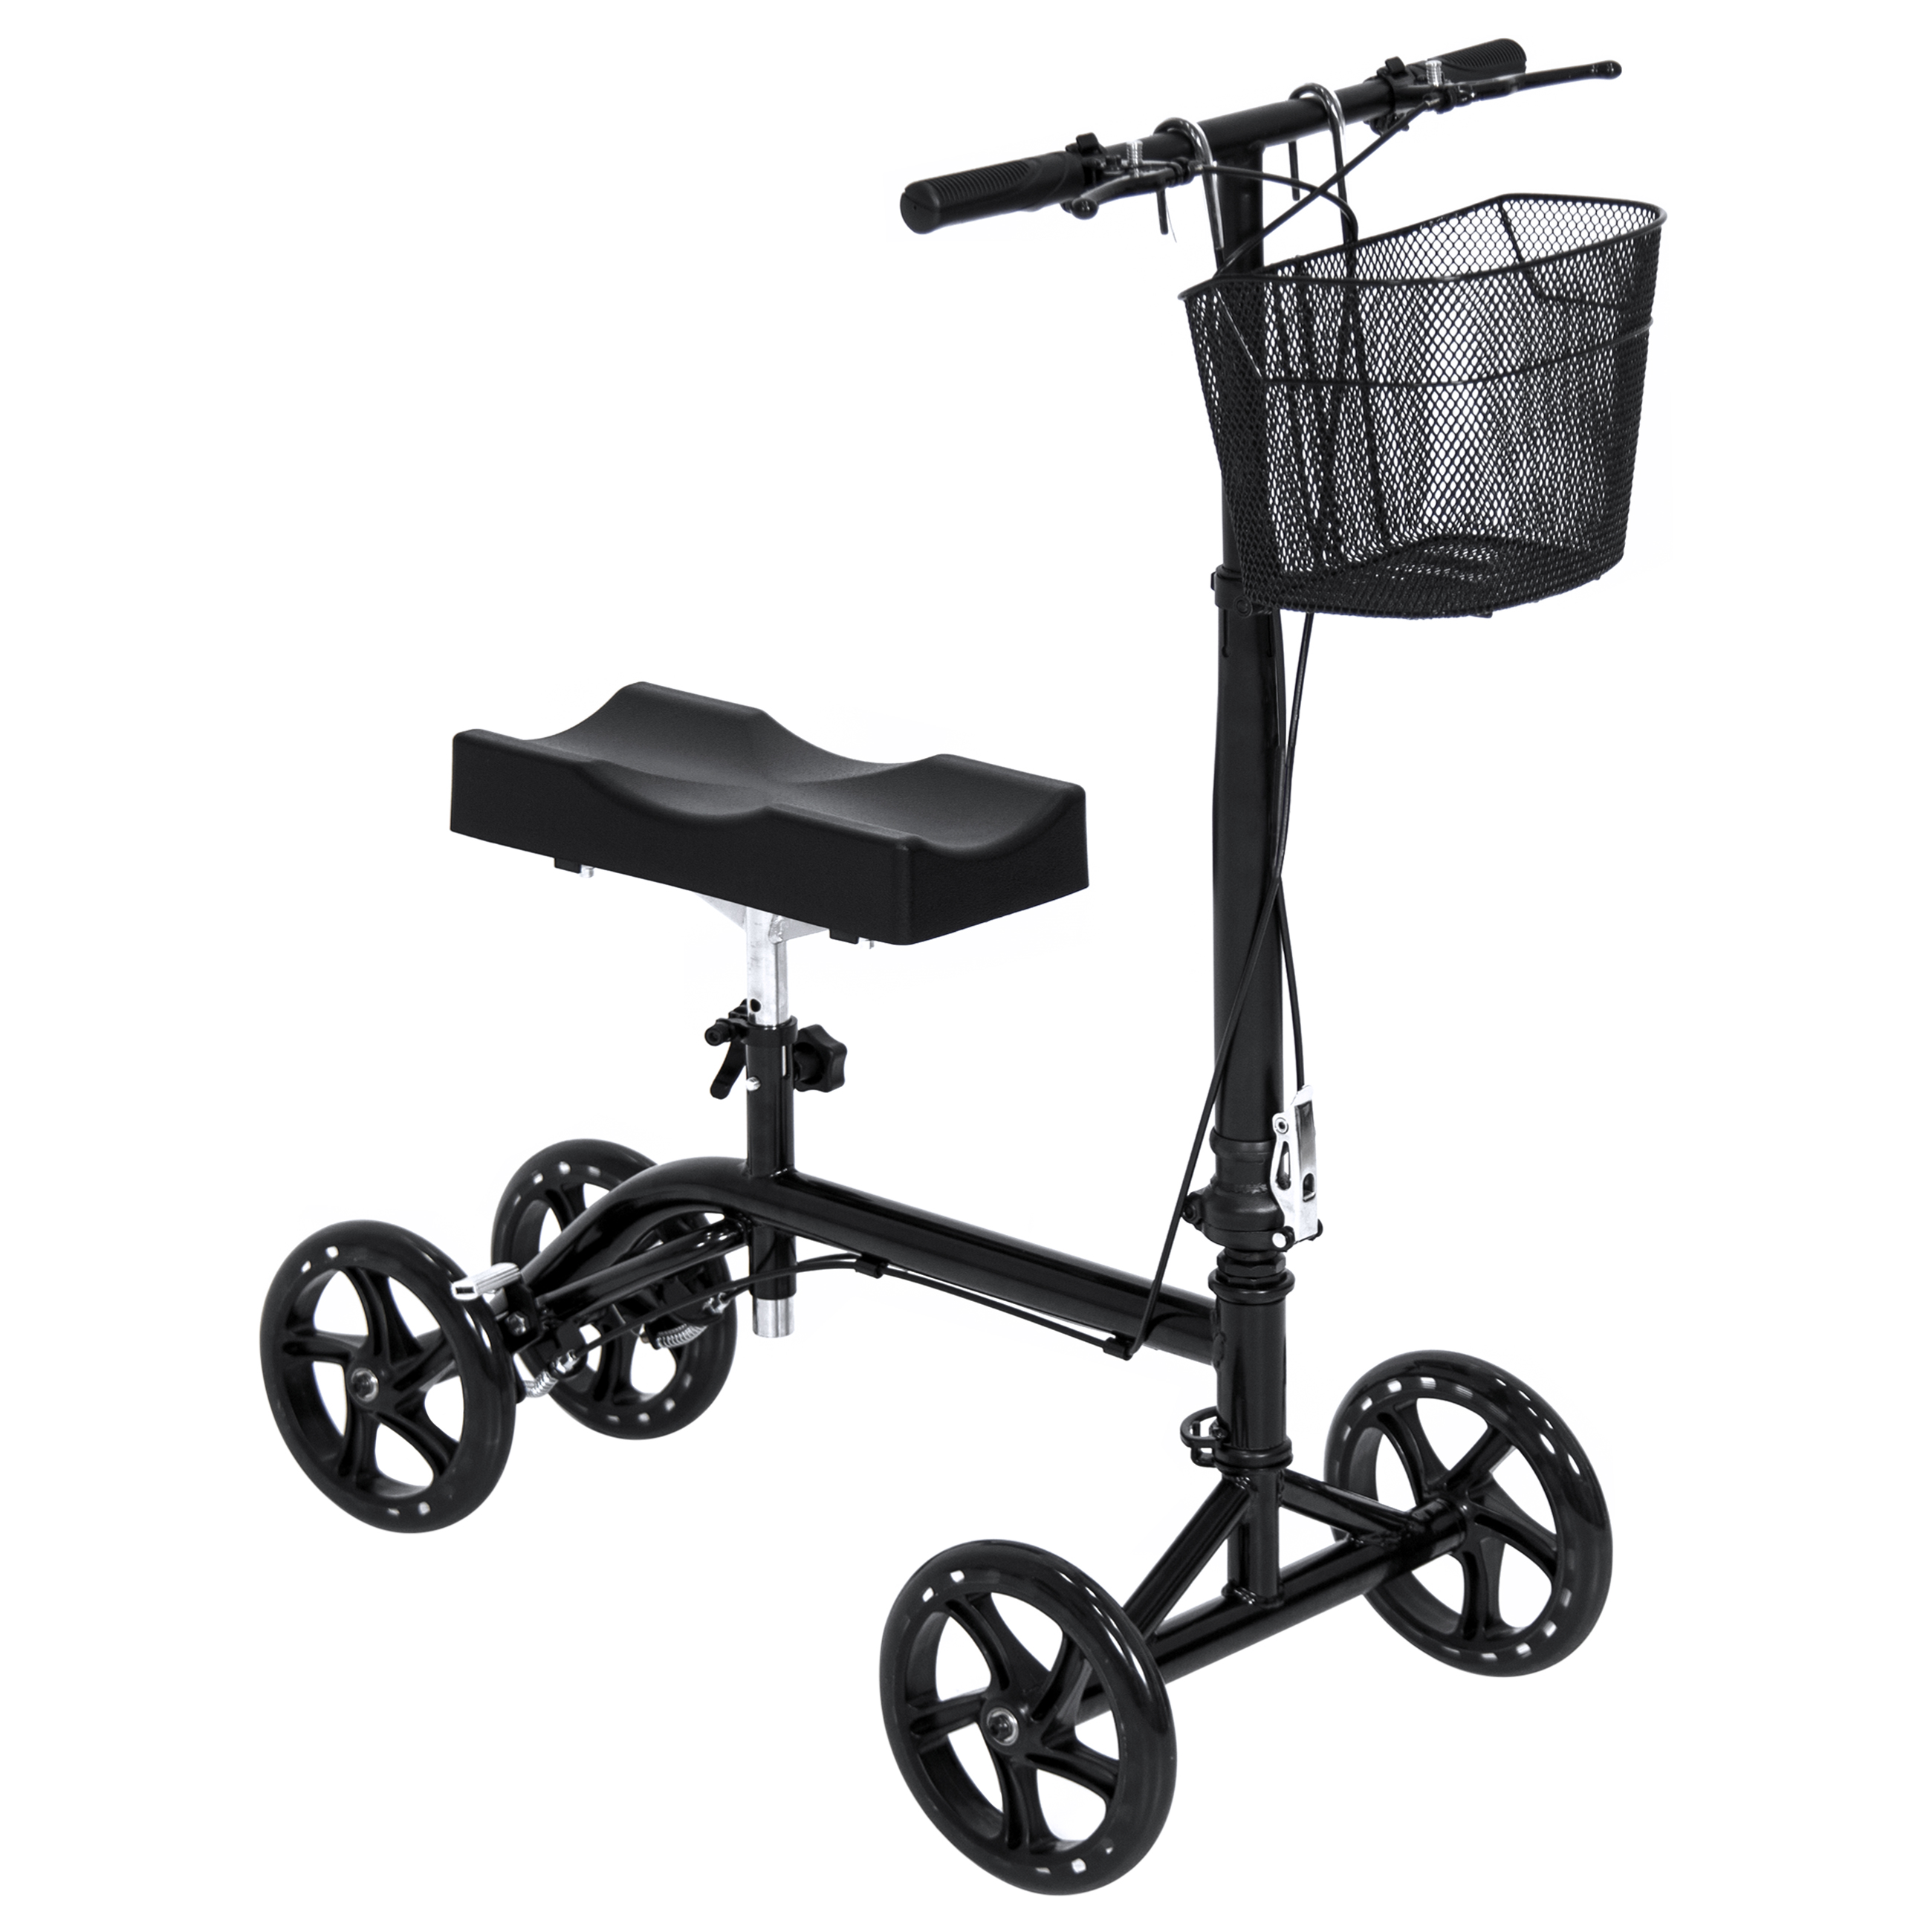 Best Choice Products Steerable Folding Medical Knee Walker Scooter Leg Crutch w/ Basket and Brake System - Black